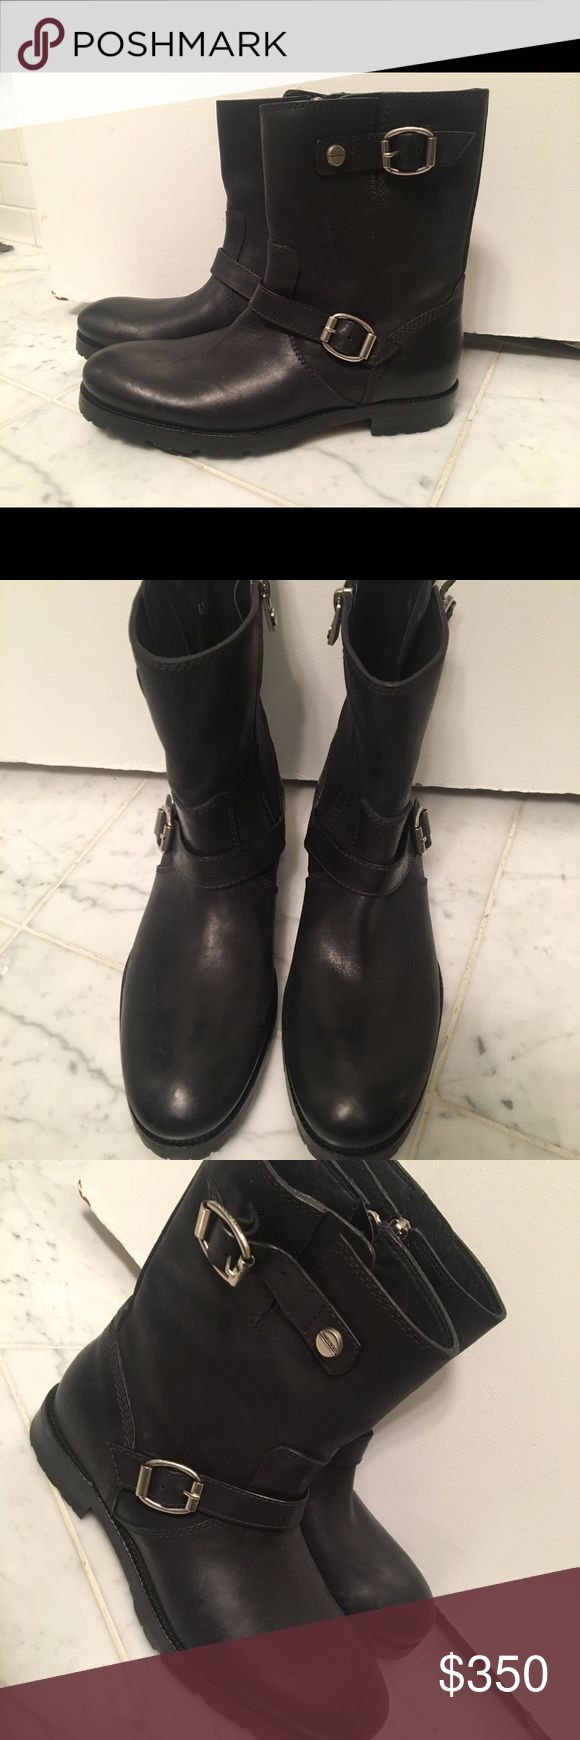 Jimmy Choo men's biker boots Stanford leather biker boots. From a sample sale and didn't fit. Never worn outside. Jimmy Choo Shoes Boots